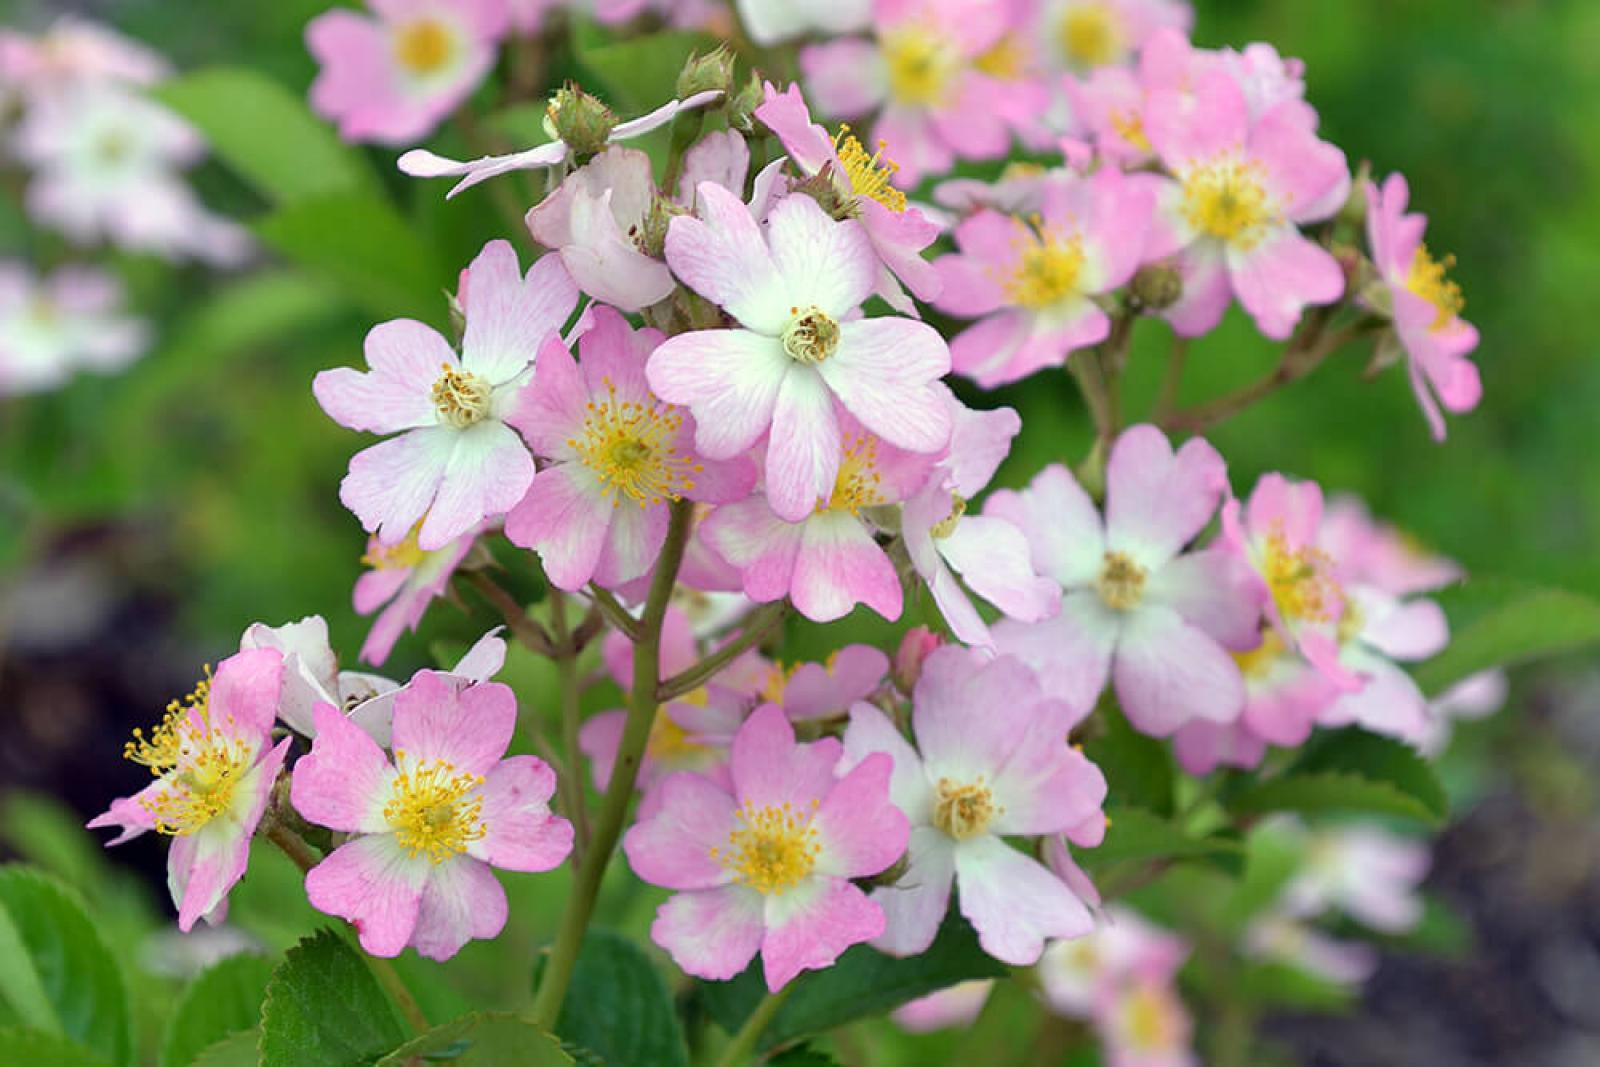 'Look-a-Like Phloxy Baby' is an attractive landscape shrub rose in this year's trial.